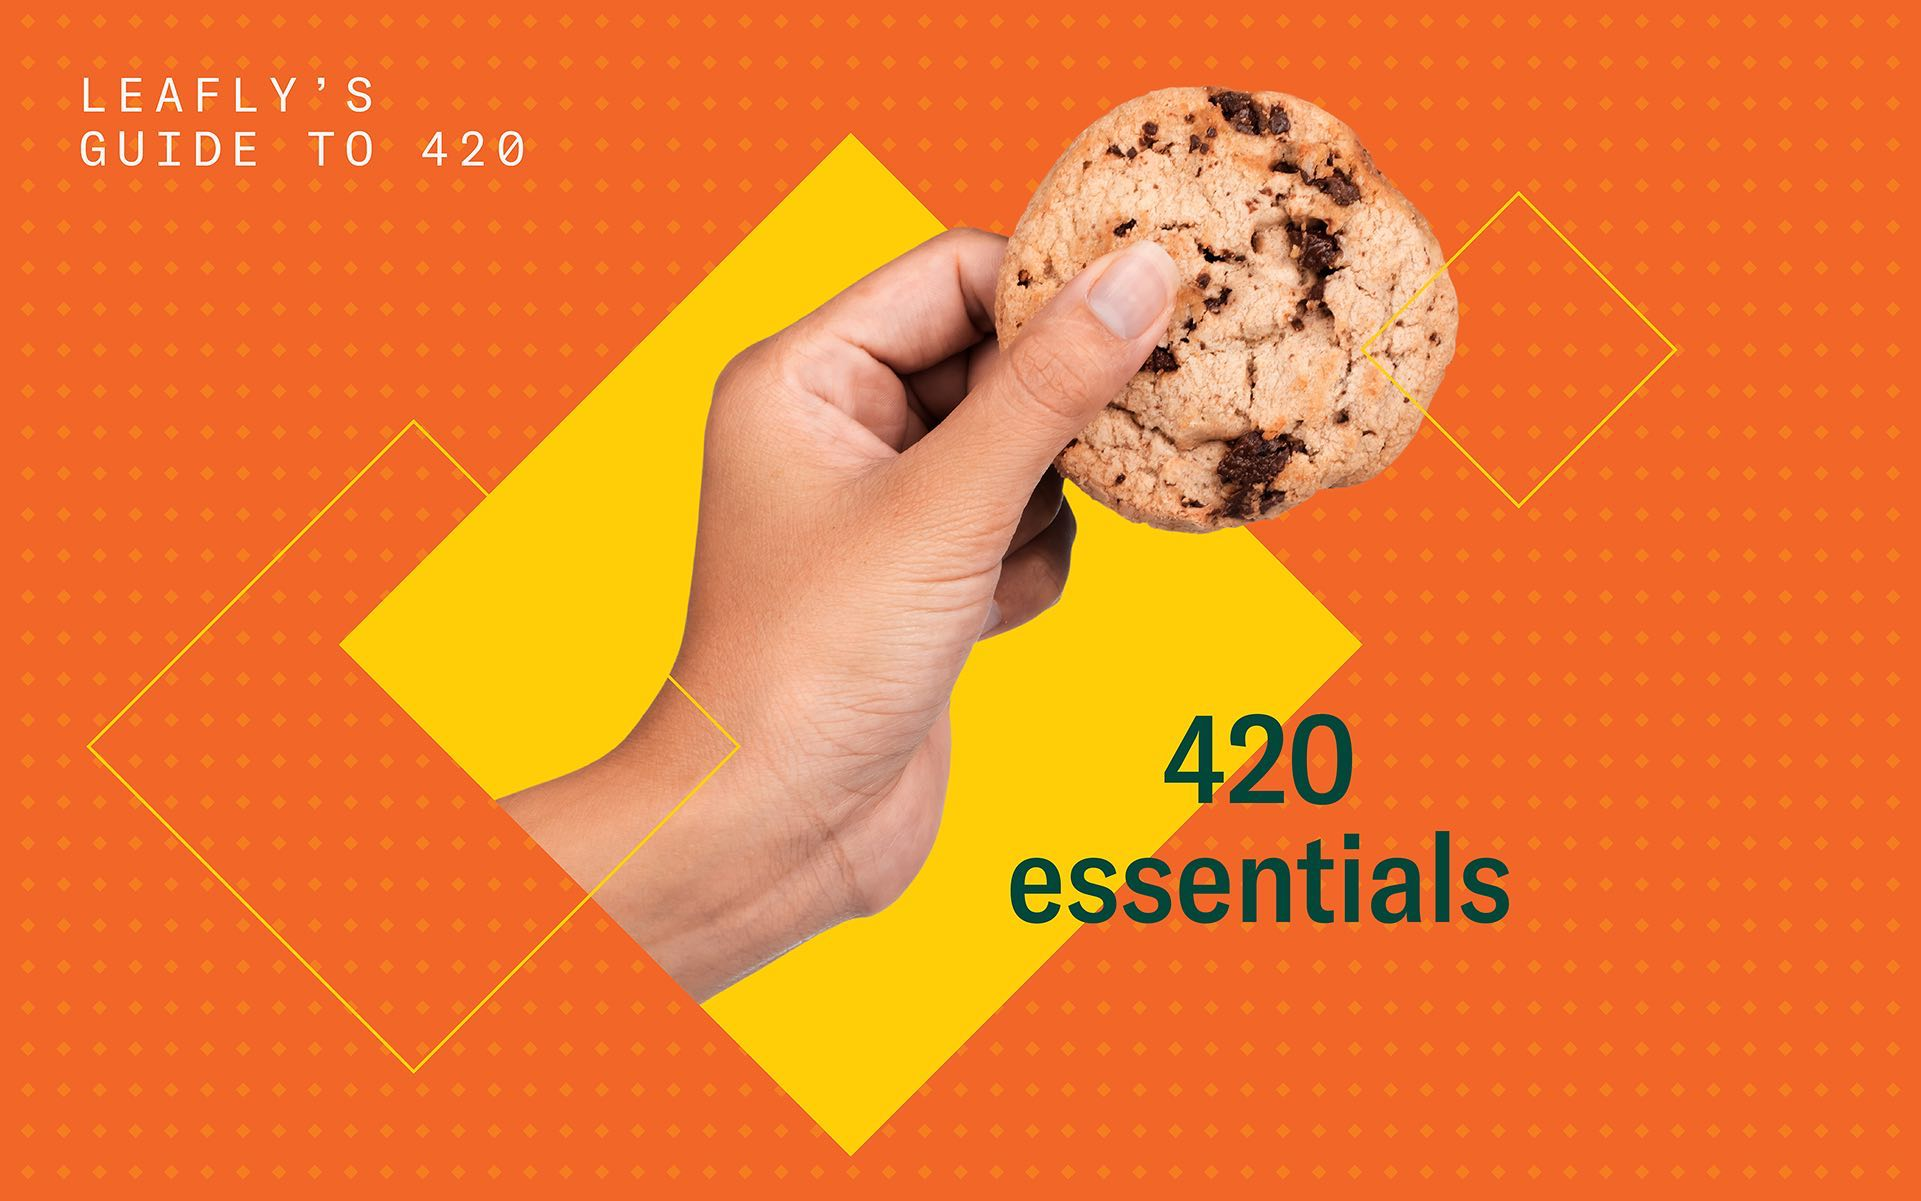 420 essentials leafly